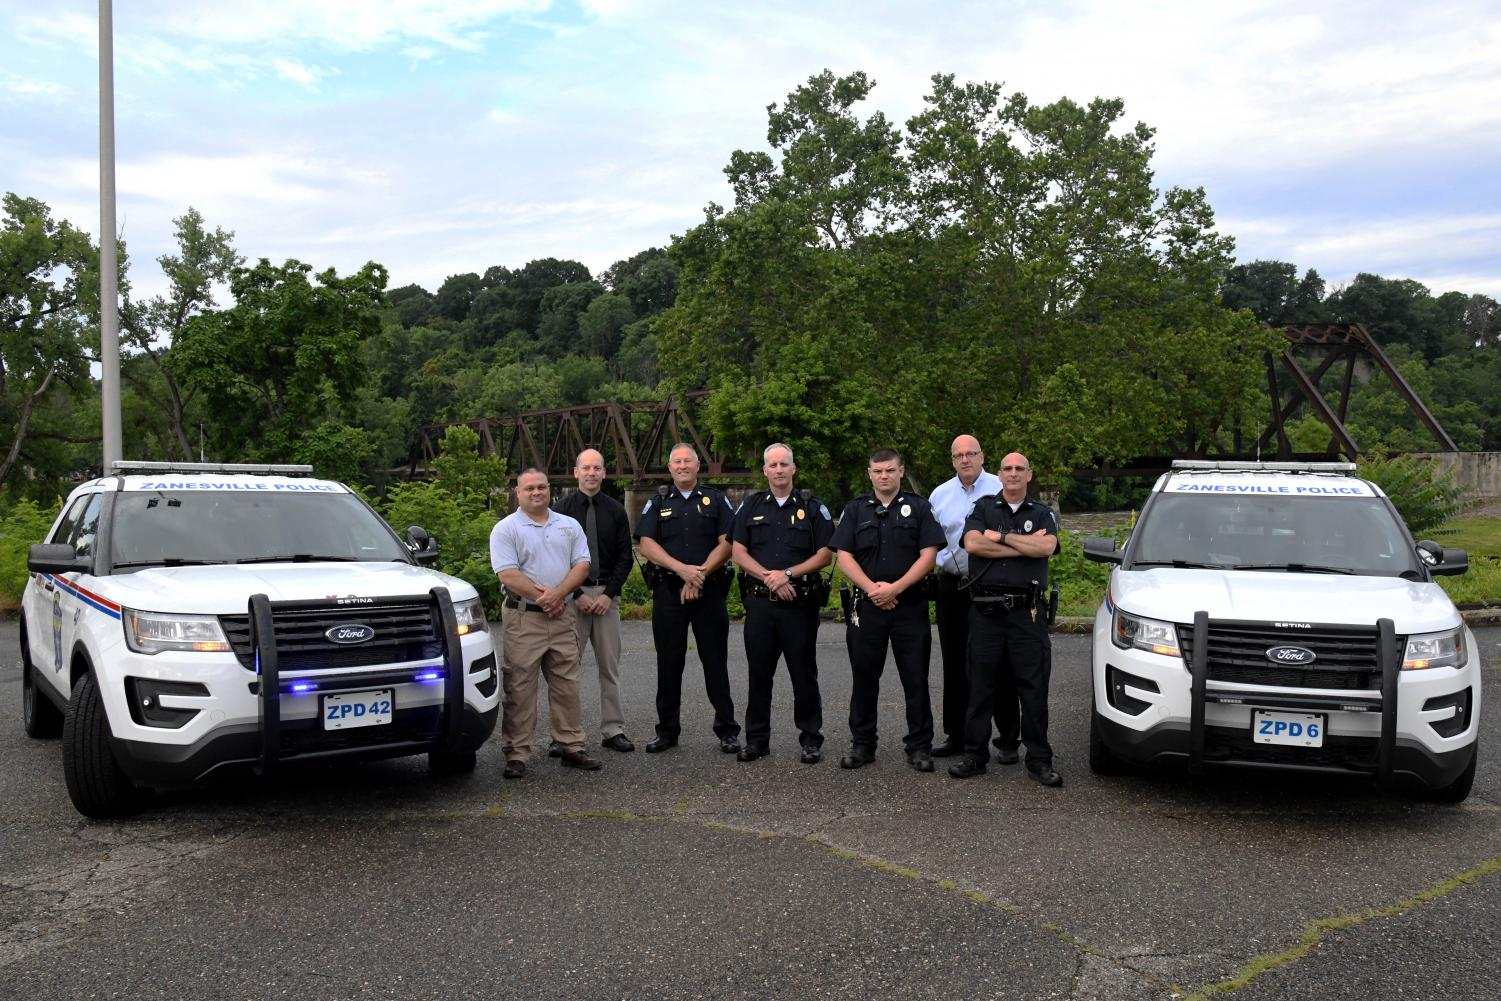 Cruiser 6 was introduced to the road today during day shift with the Zanesville Police Department. Cruiser 42, the new K-9 cruiser, is awaiting one last feature addition before it can hit the road.